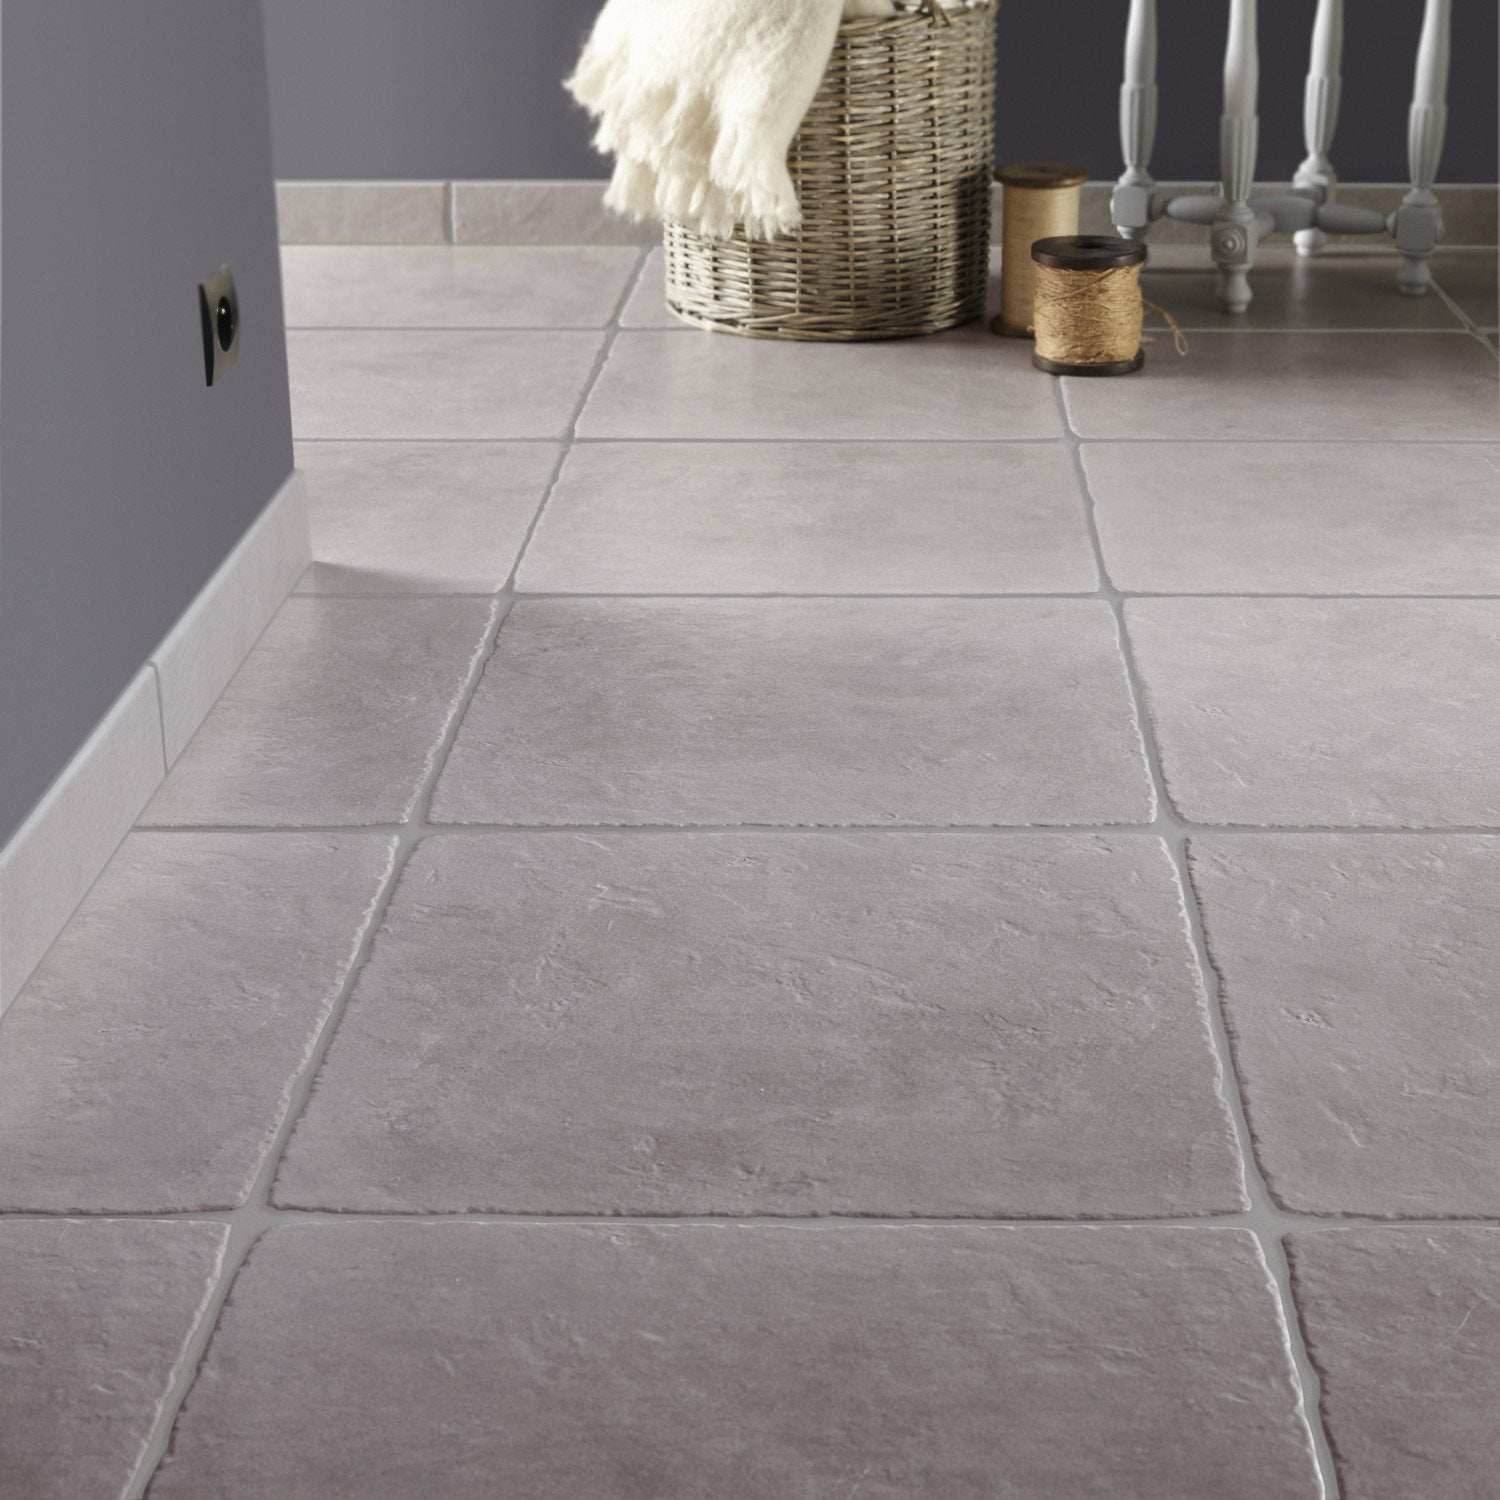 Best carrelage gris mur lin ideas for Carrelage 80x80 gris